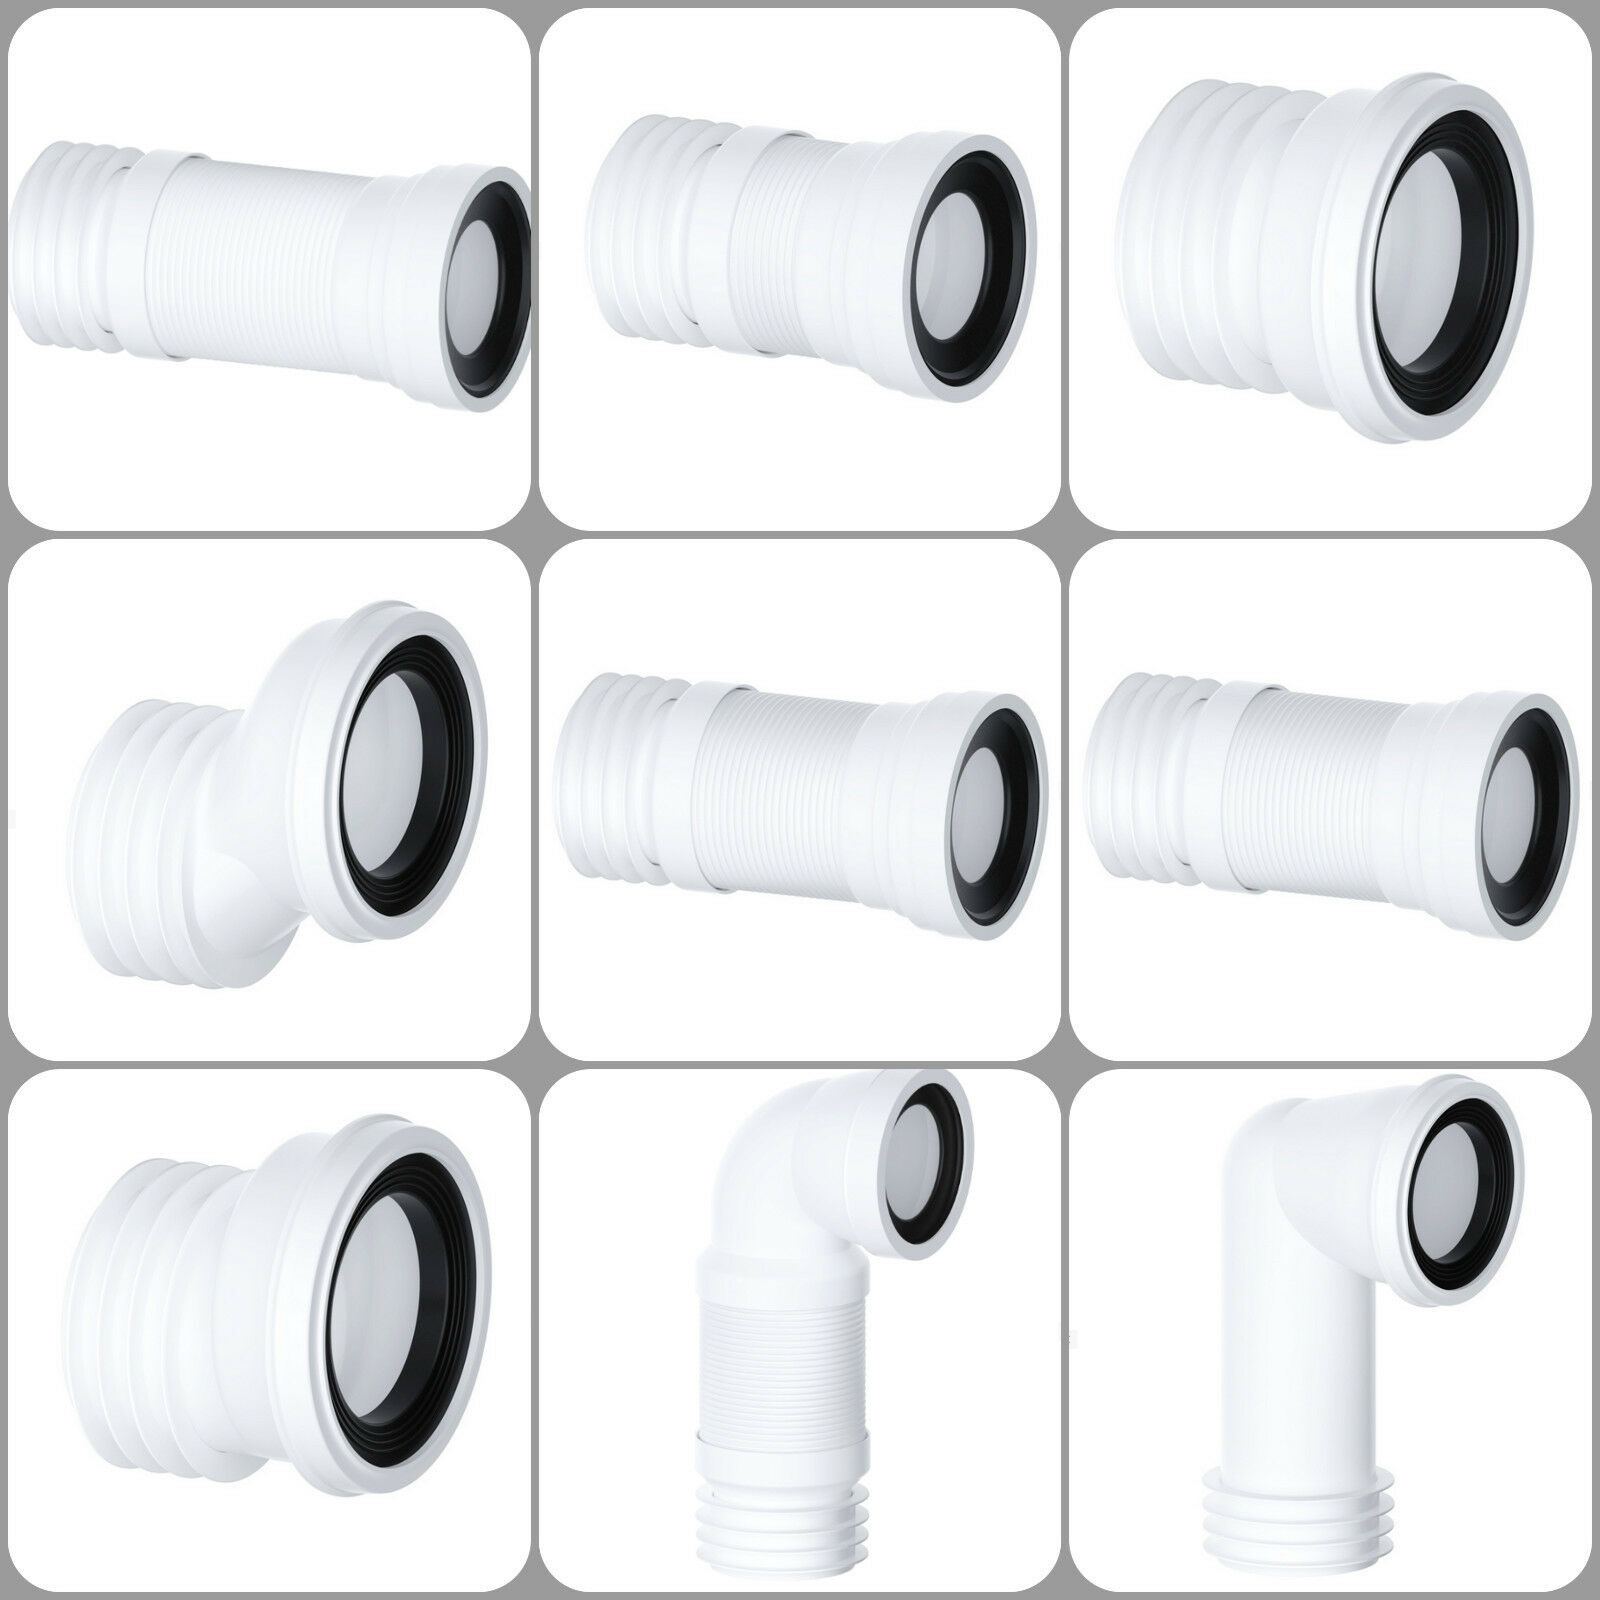 Details about Pan Connector VIVA WC Toilet Soil Pipe Flexible / Straight /  All Sizes - VIVA